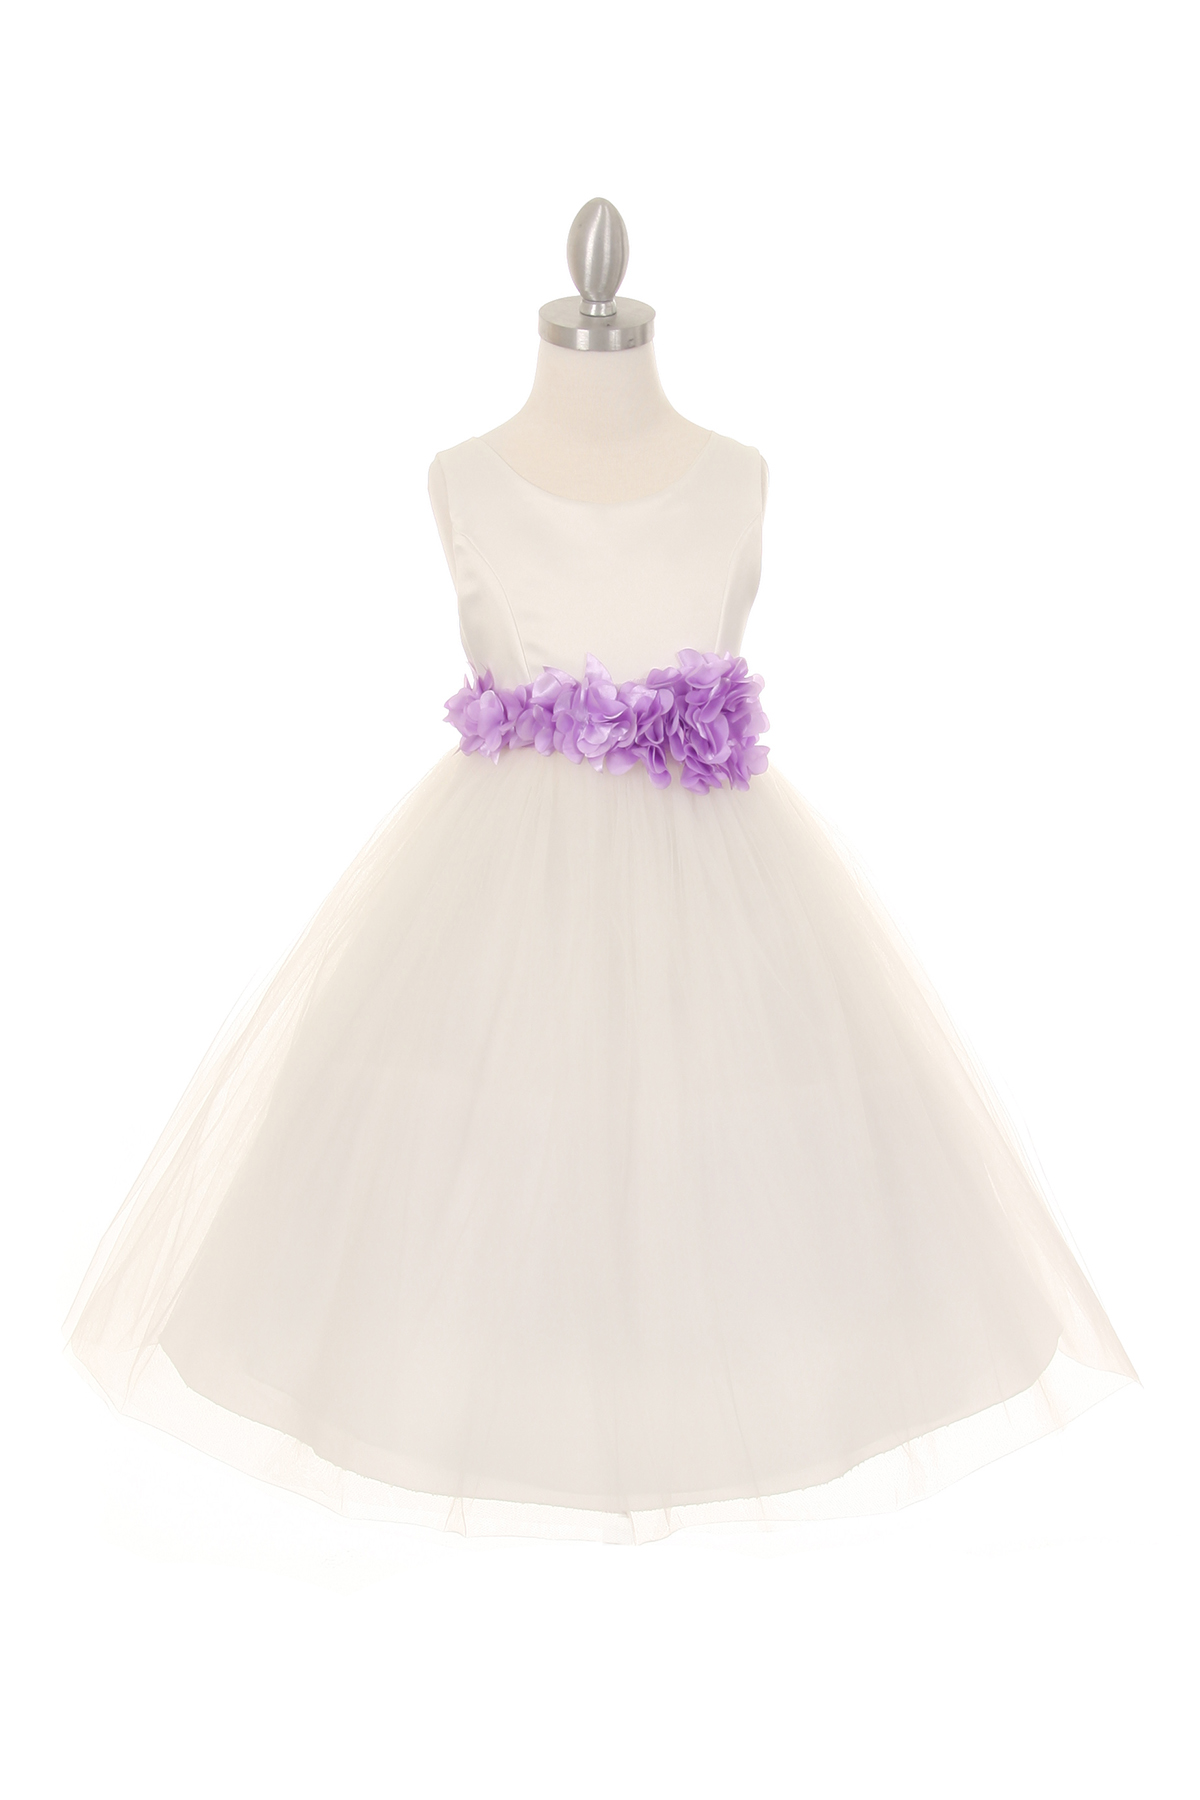 ivory dress with lavender flower sash